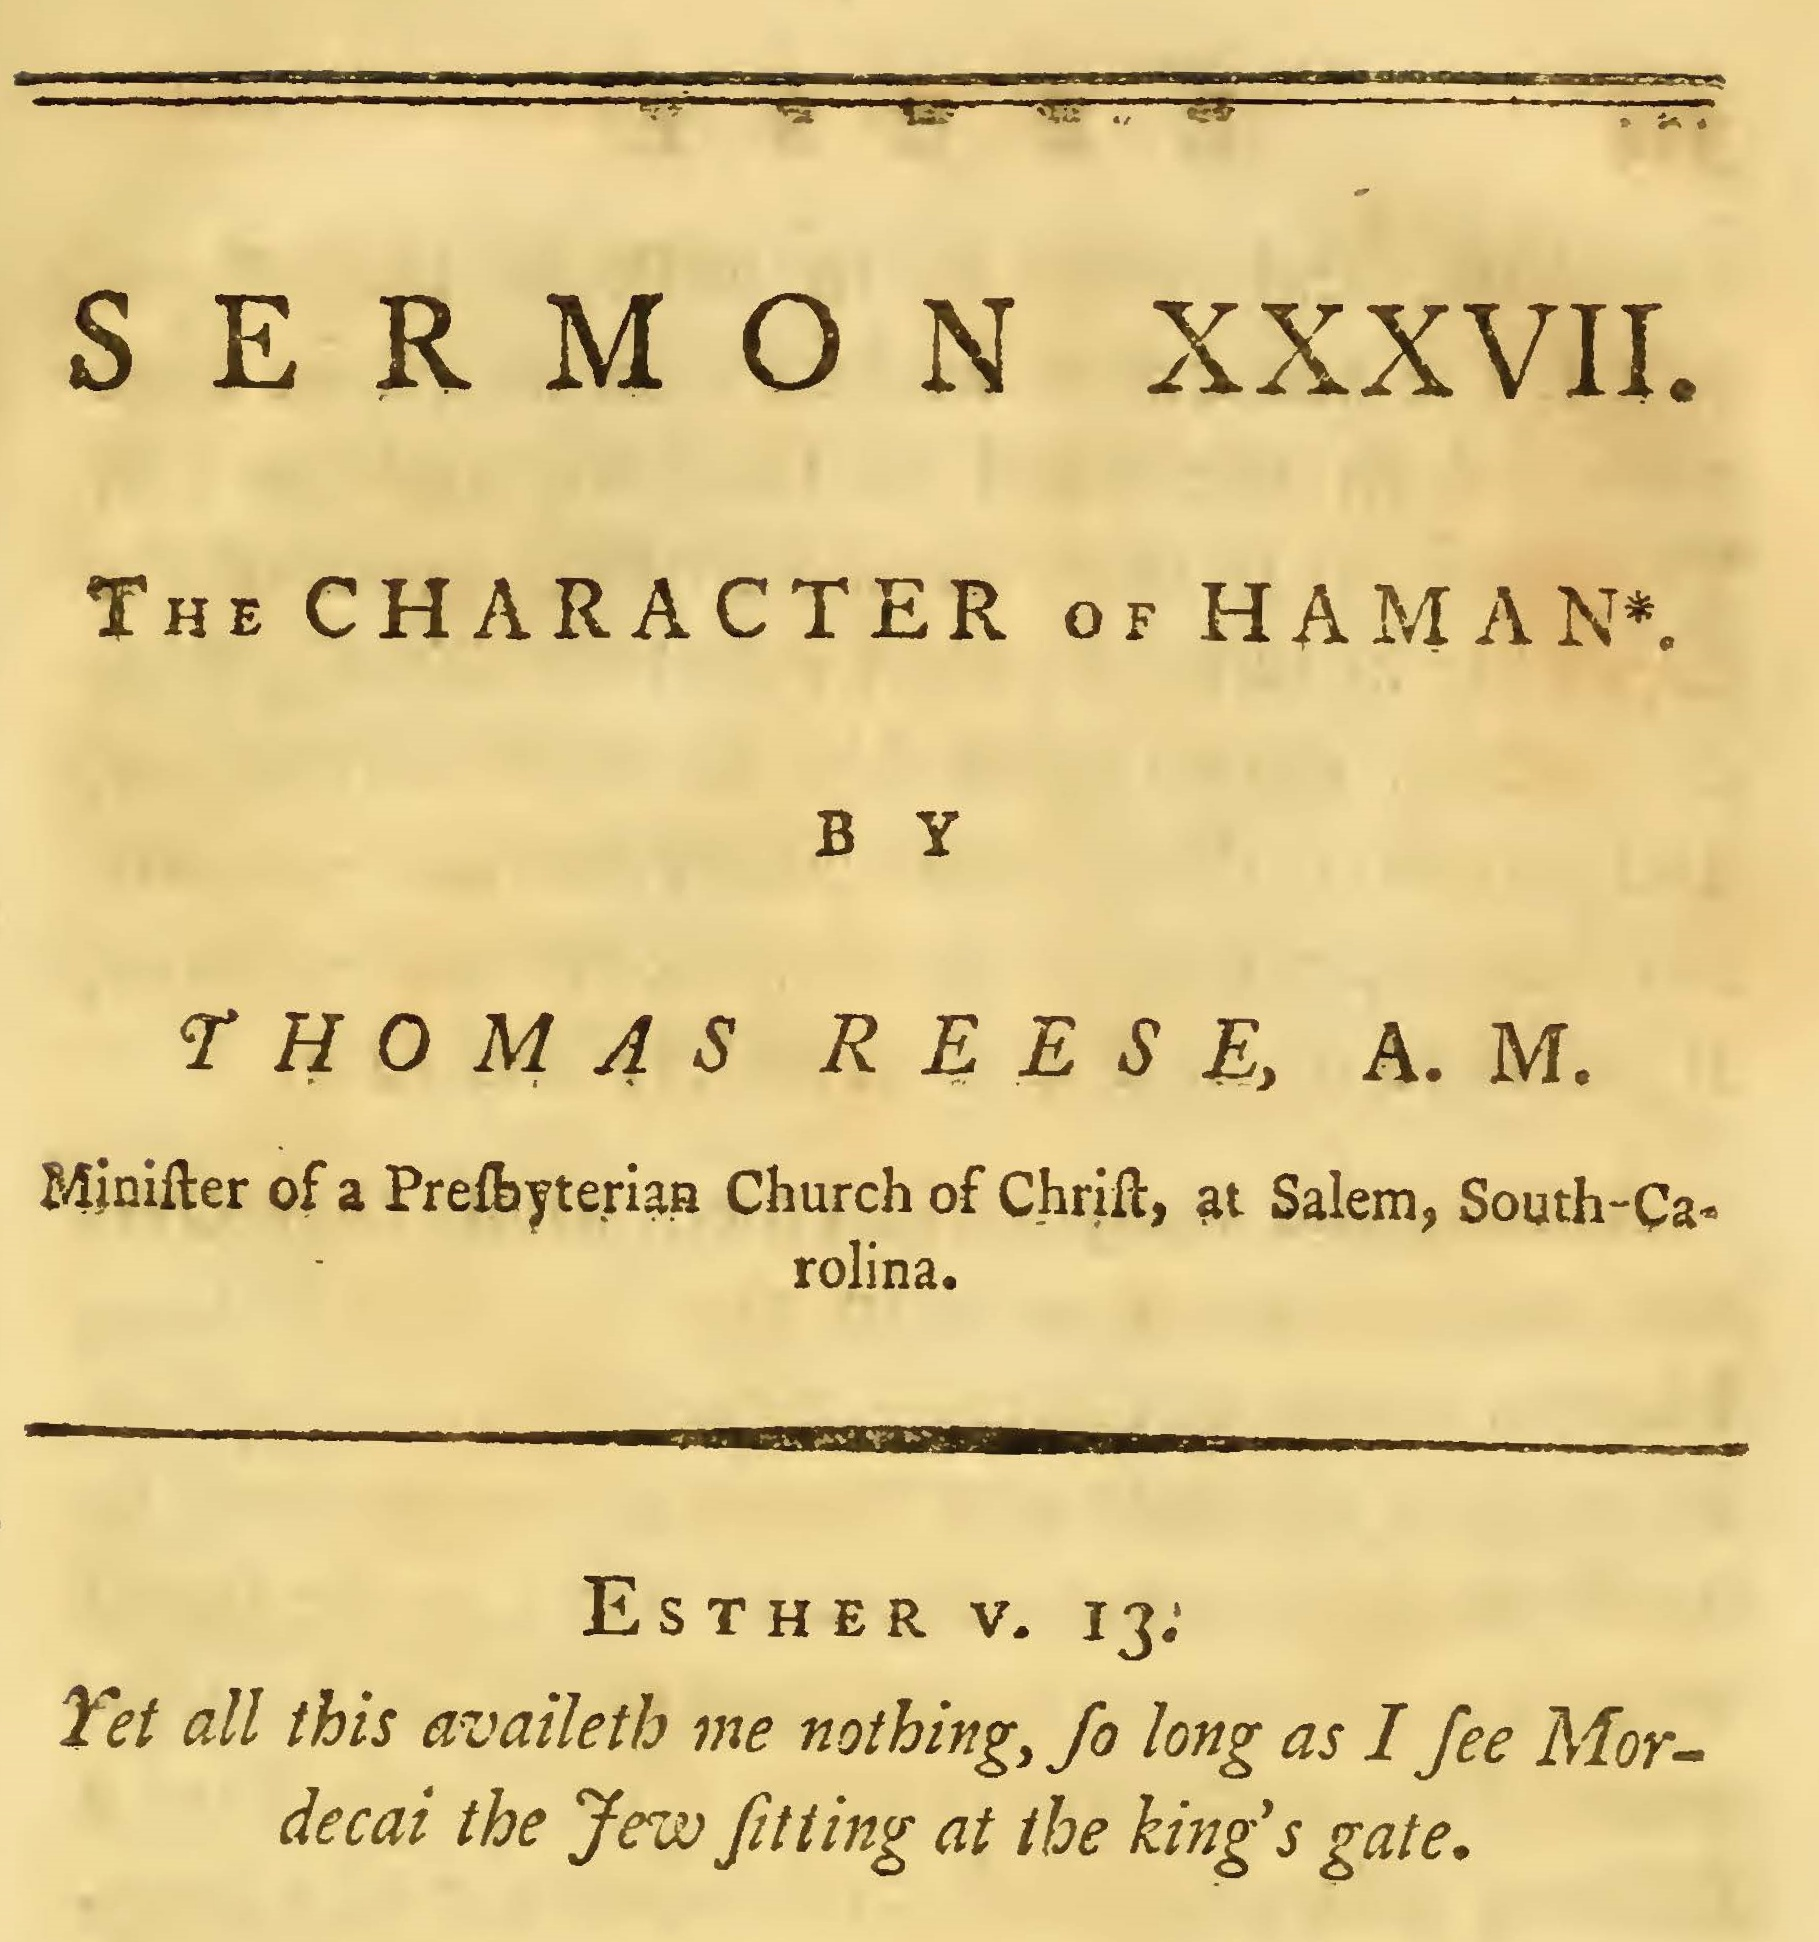 Reese, Thomas, The Character of Haman Title Page.jpg